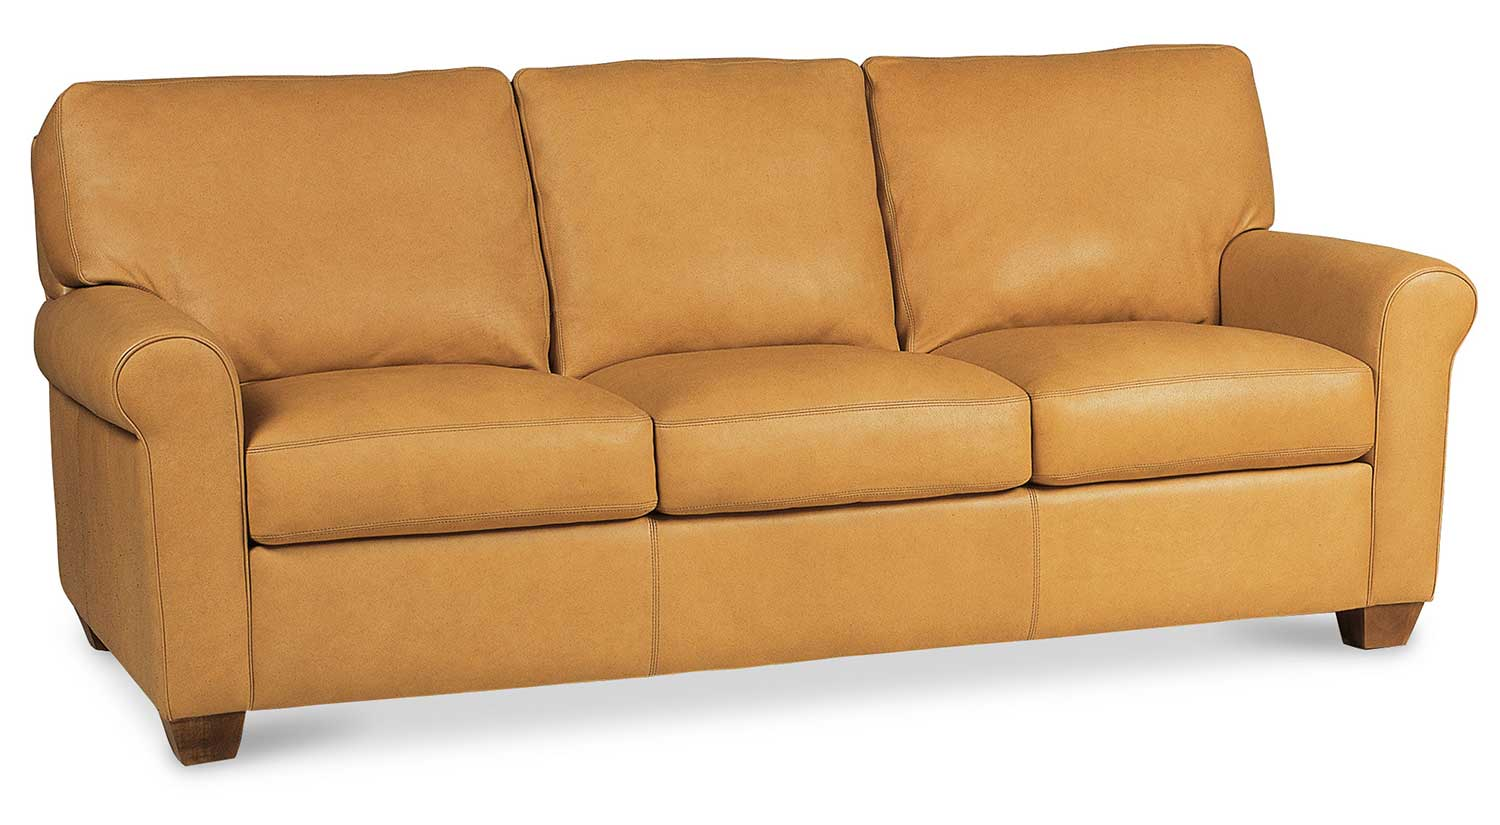 Circle Furniture Savoy Sofa Designer Sofas Cambridge